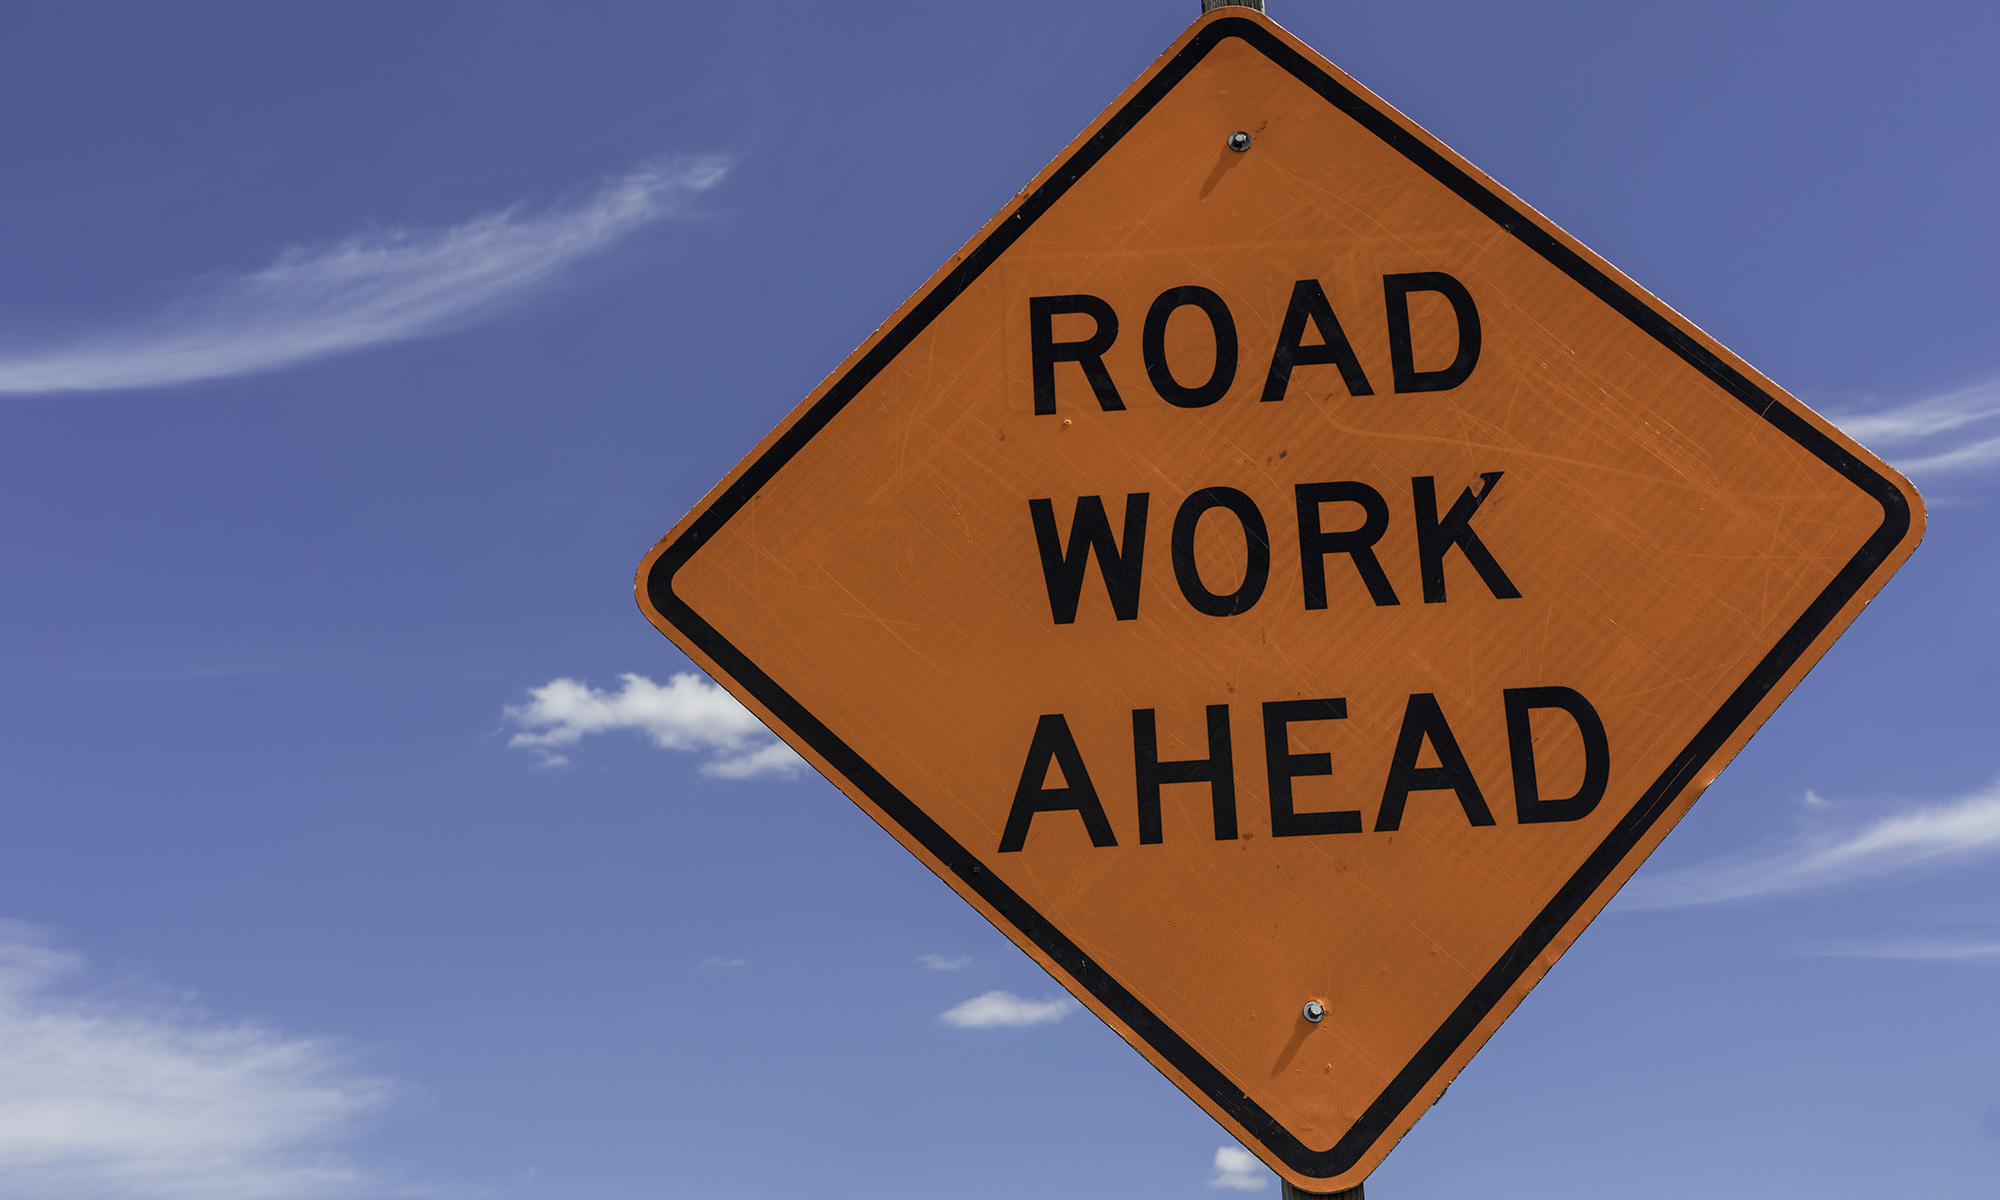 Lake Cook & Weiland Road Construction projects